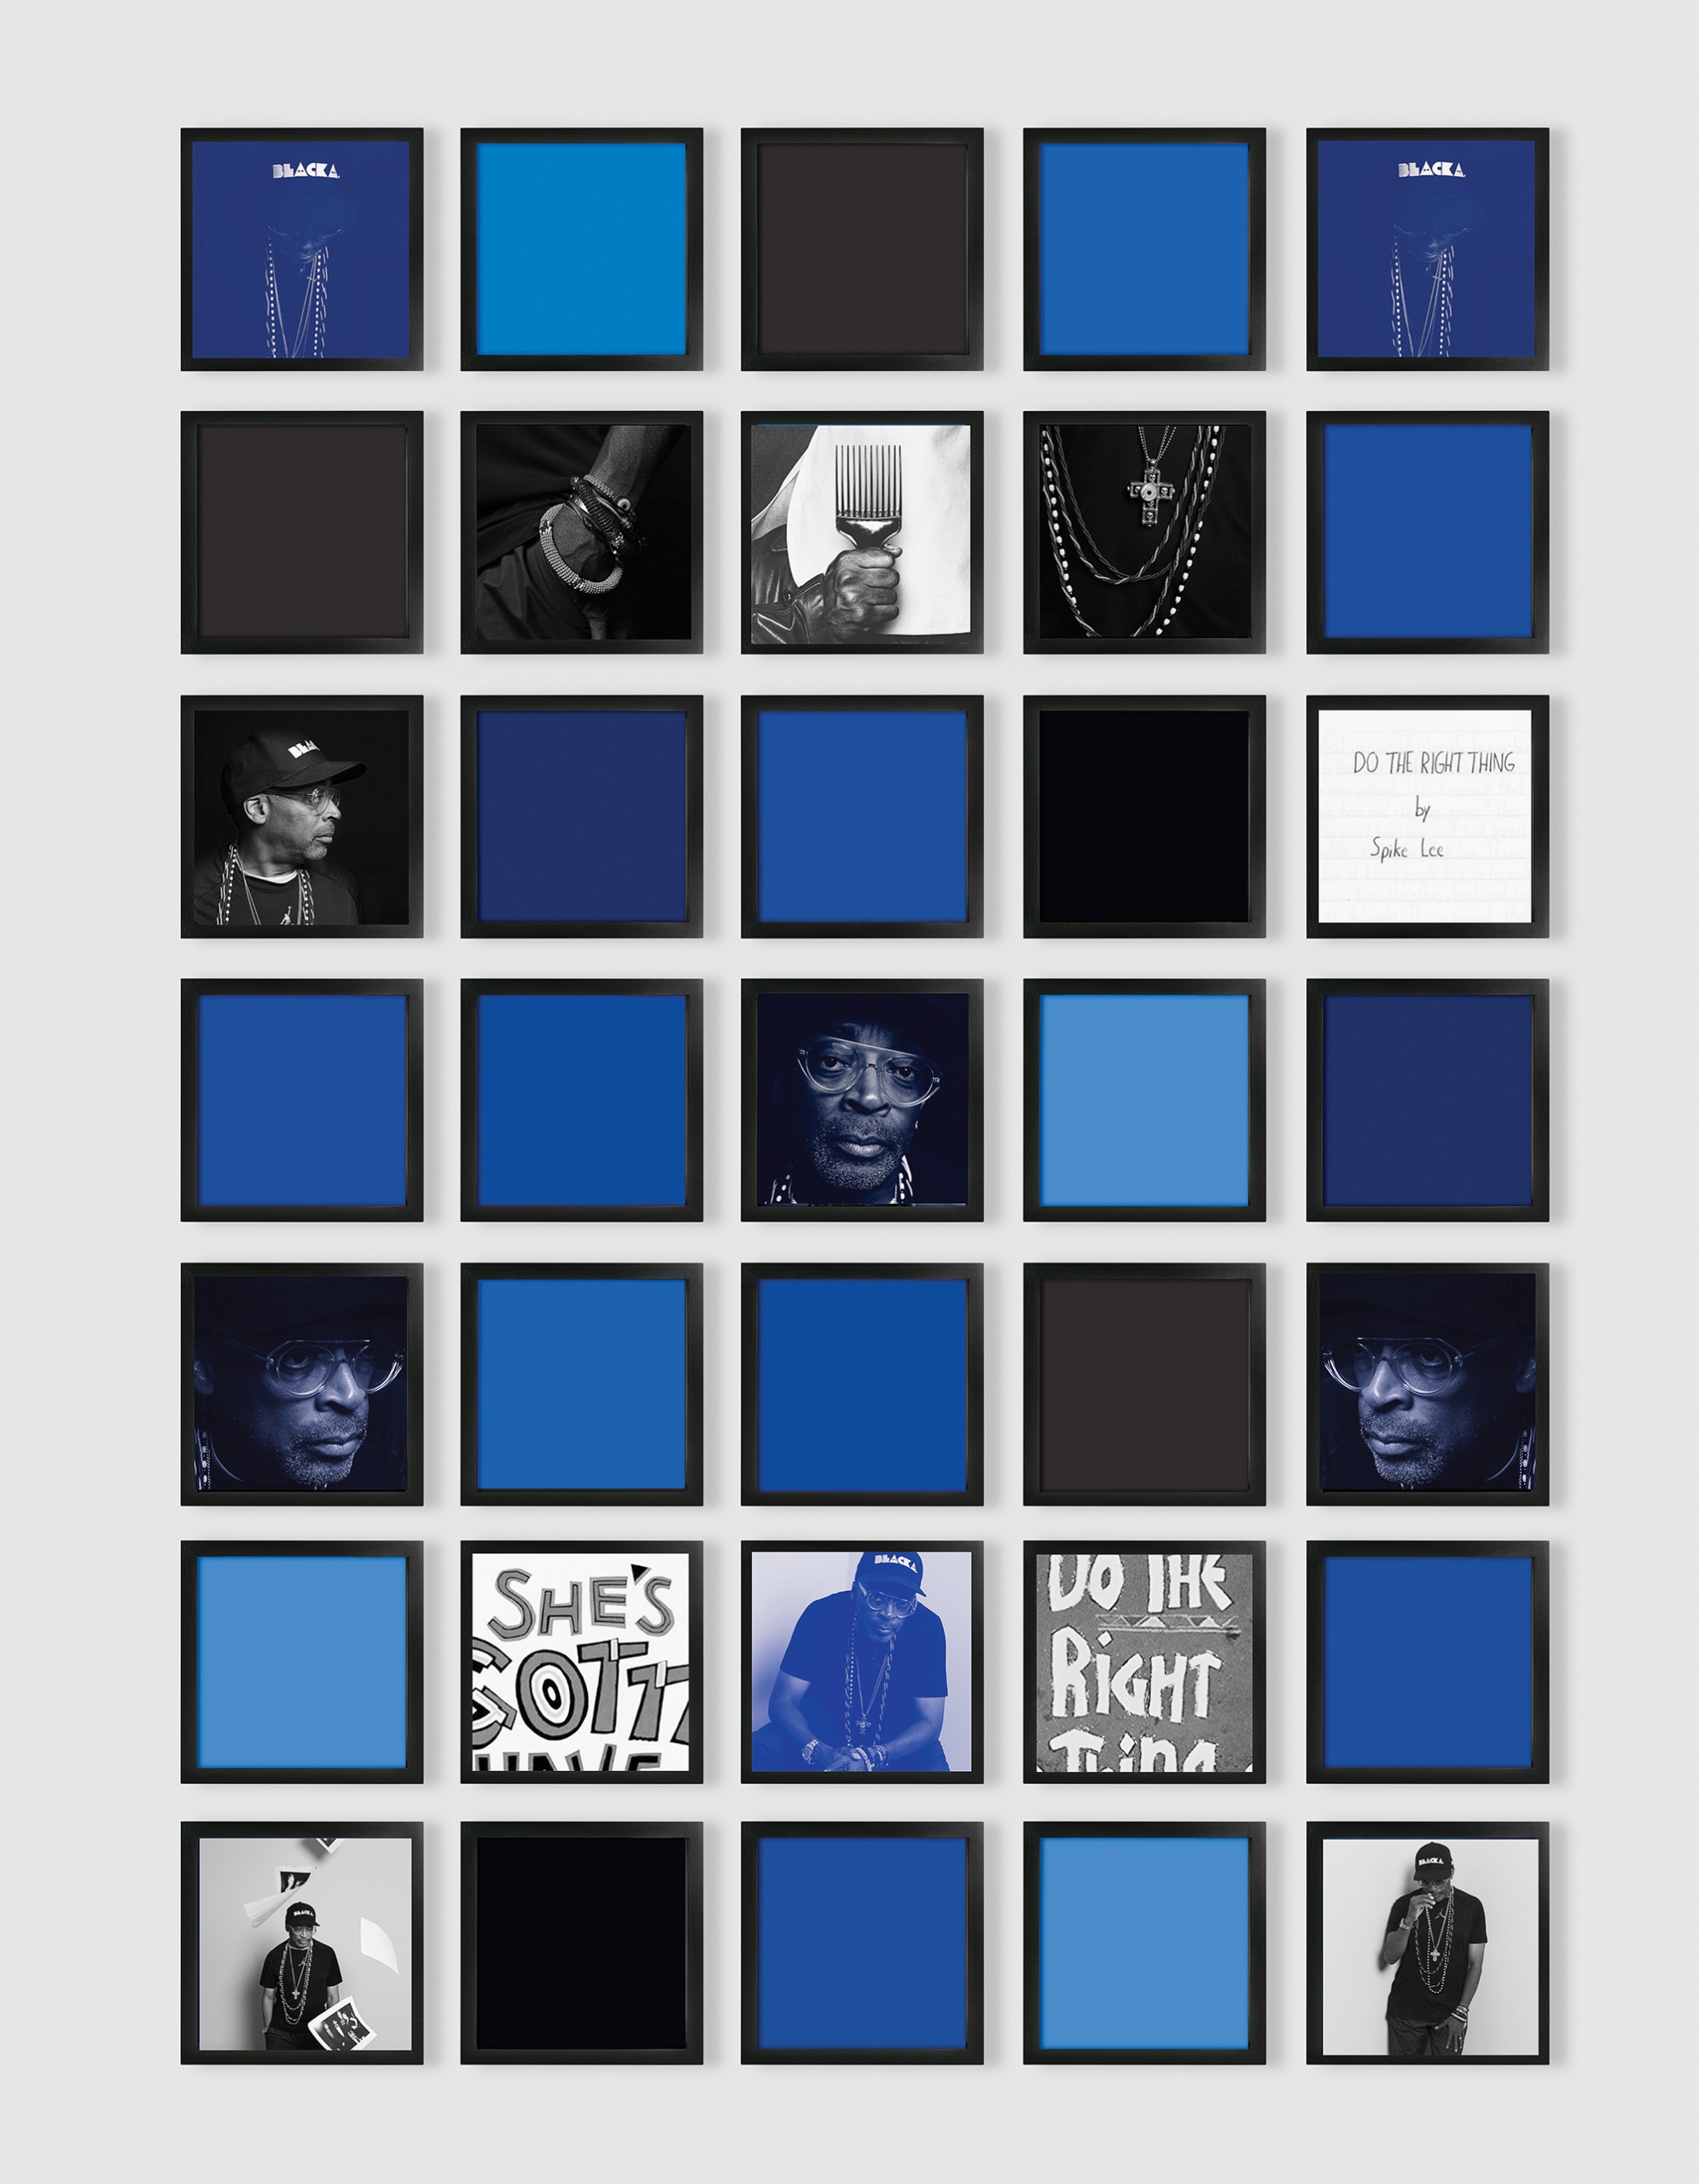 Carrie Mae Weems, Untitled (Spike Lee Grid), 2018. Courtesy the artist and Jack Shainman Gallery, New York, NY